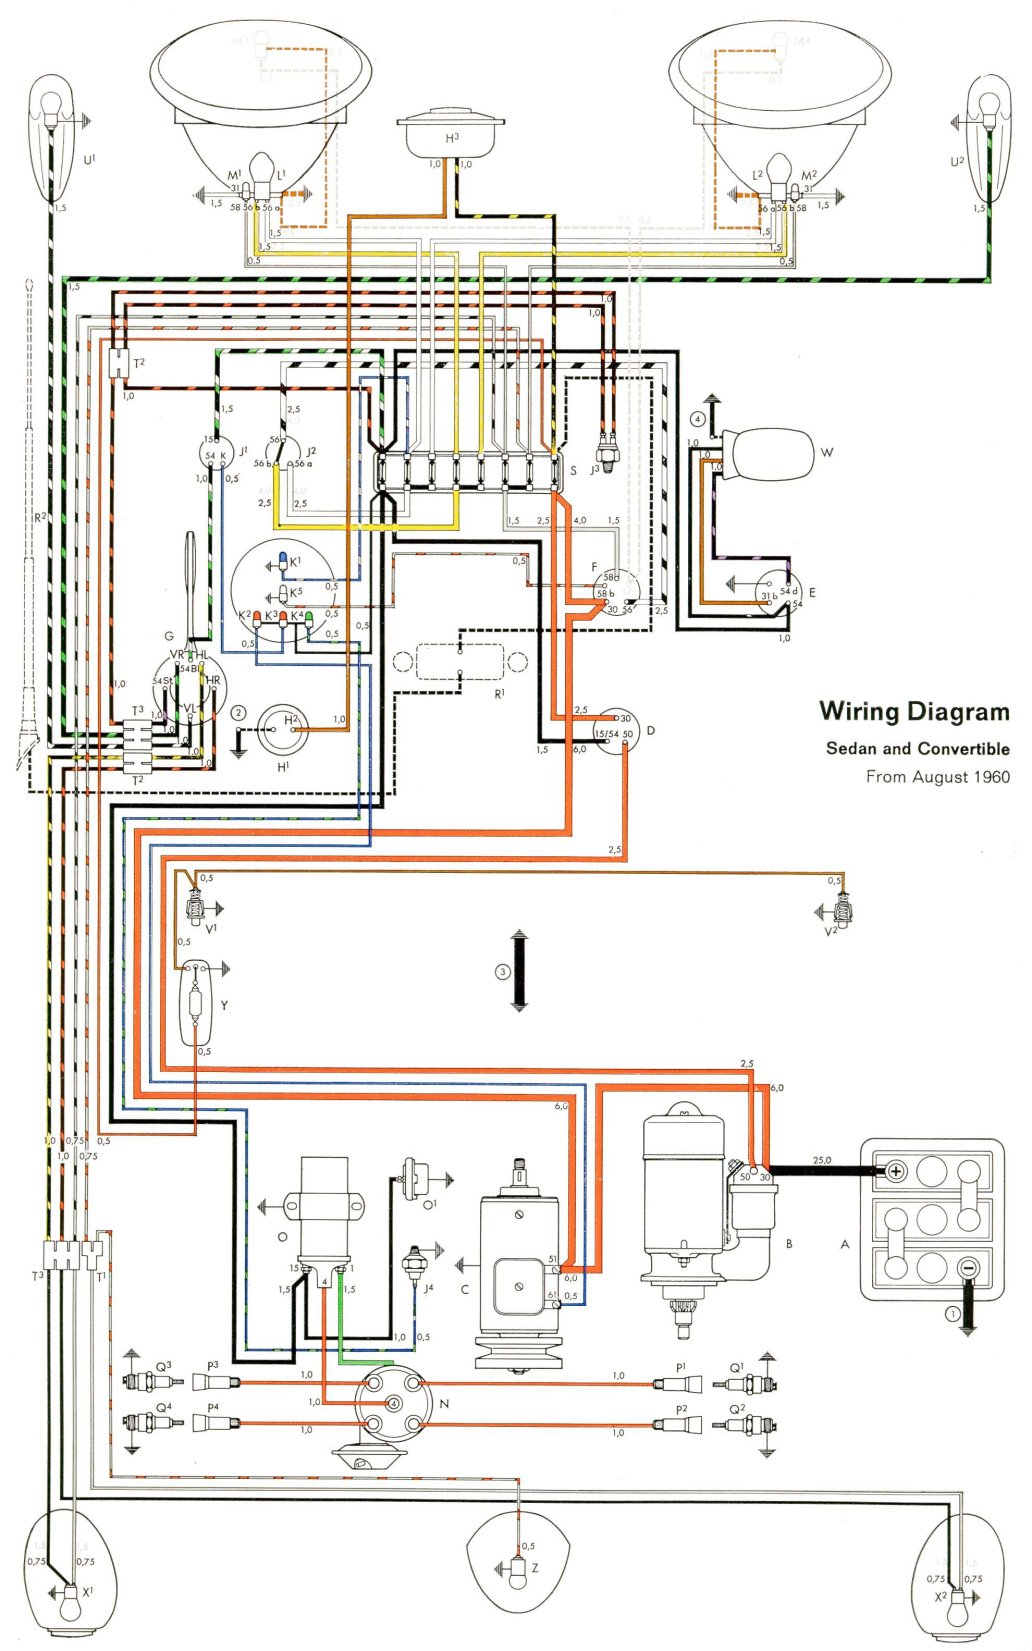 bug_61 1961 beetle wiring diagram thegoldenbug com vw beetle diagrams at virtualis.co